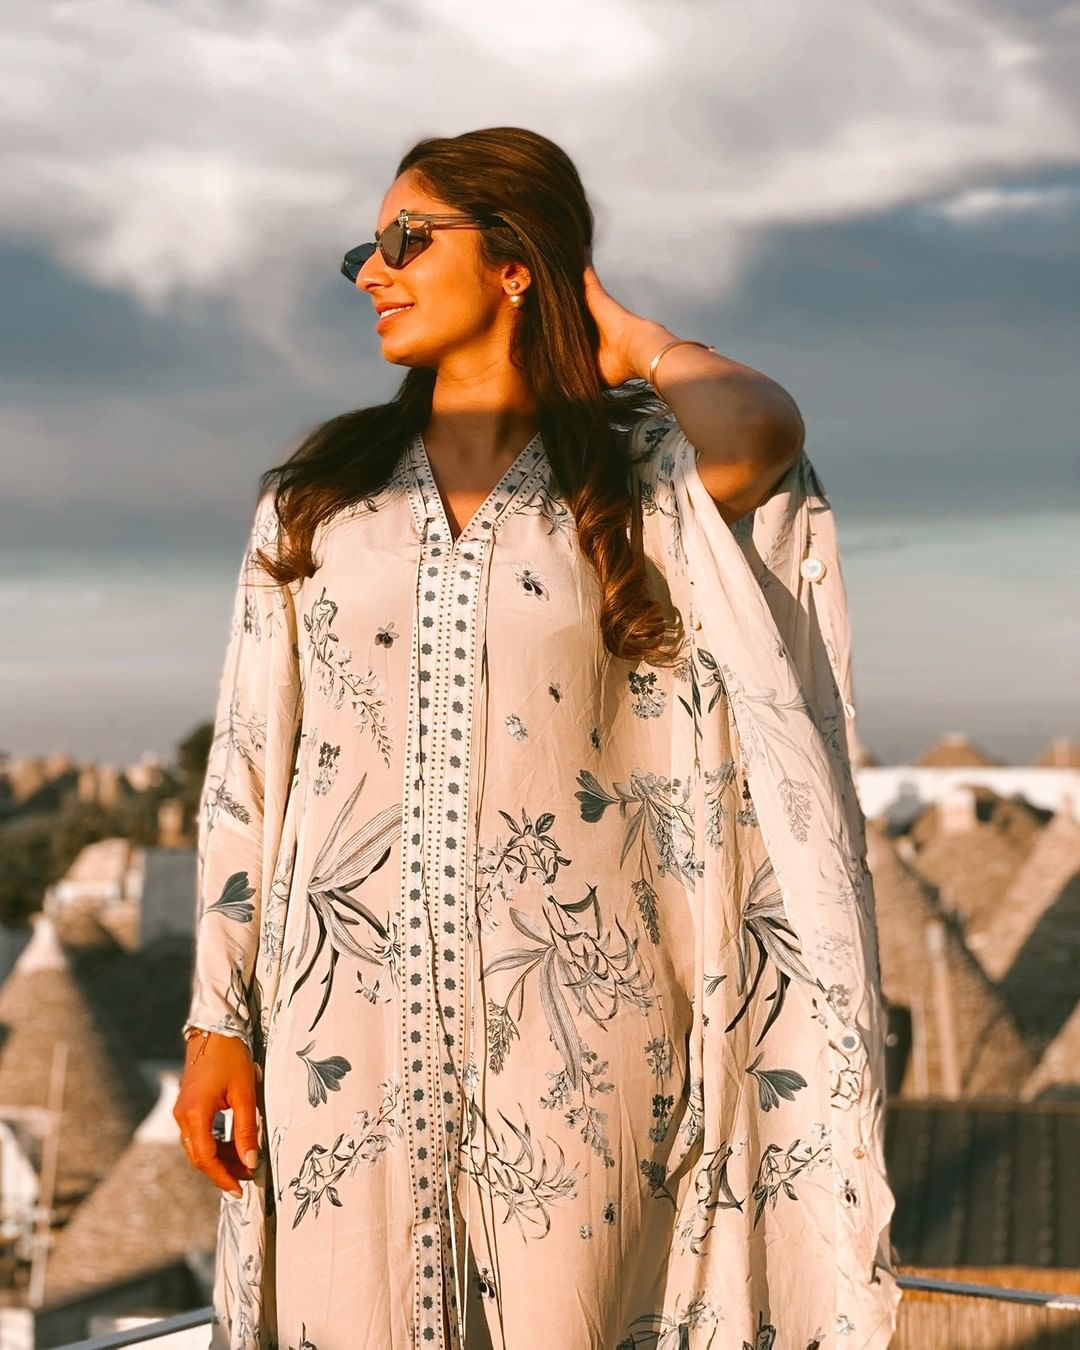 Seize the sunny day with AMWoman in Seashore floral print kaftan with cowrie shell and mirror detailing.  2021-09-01